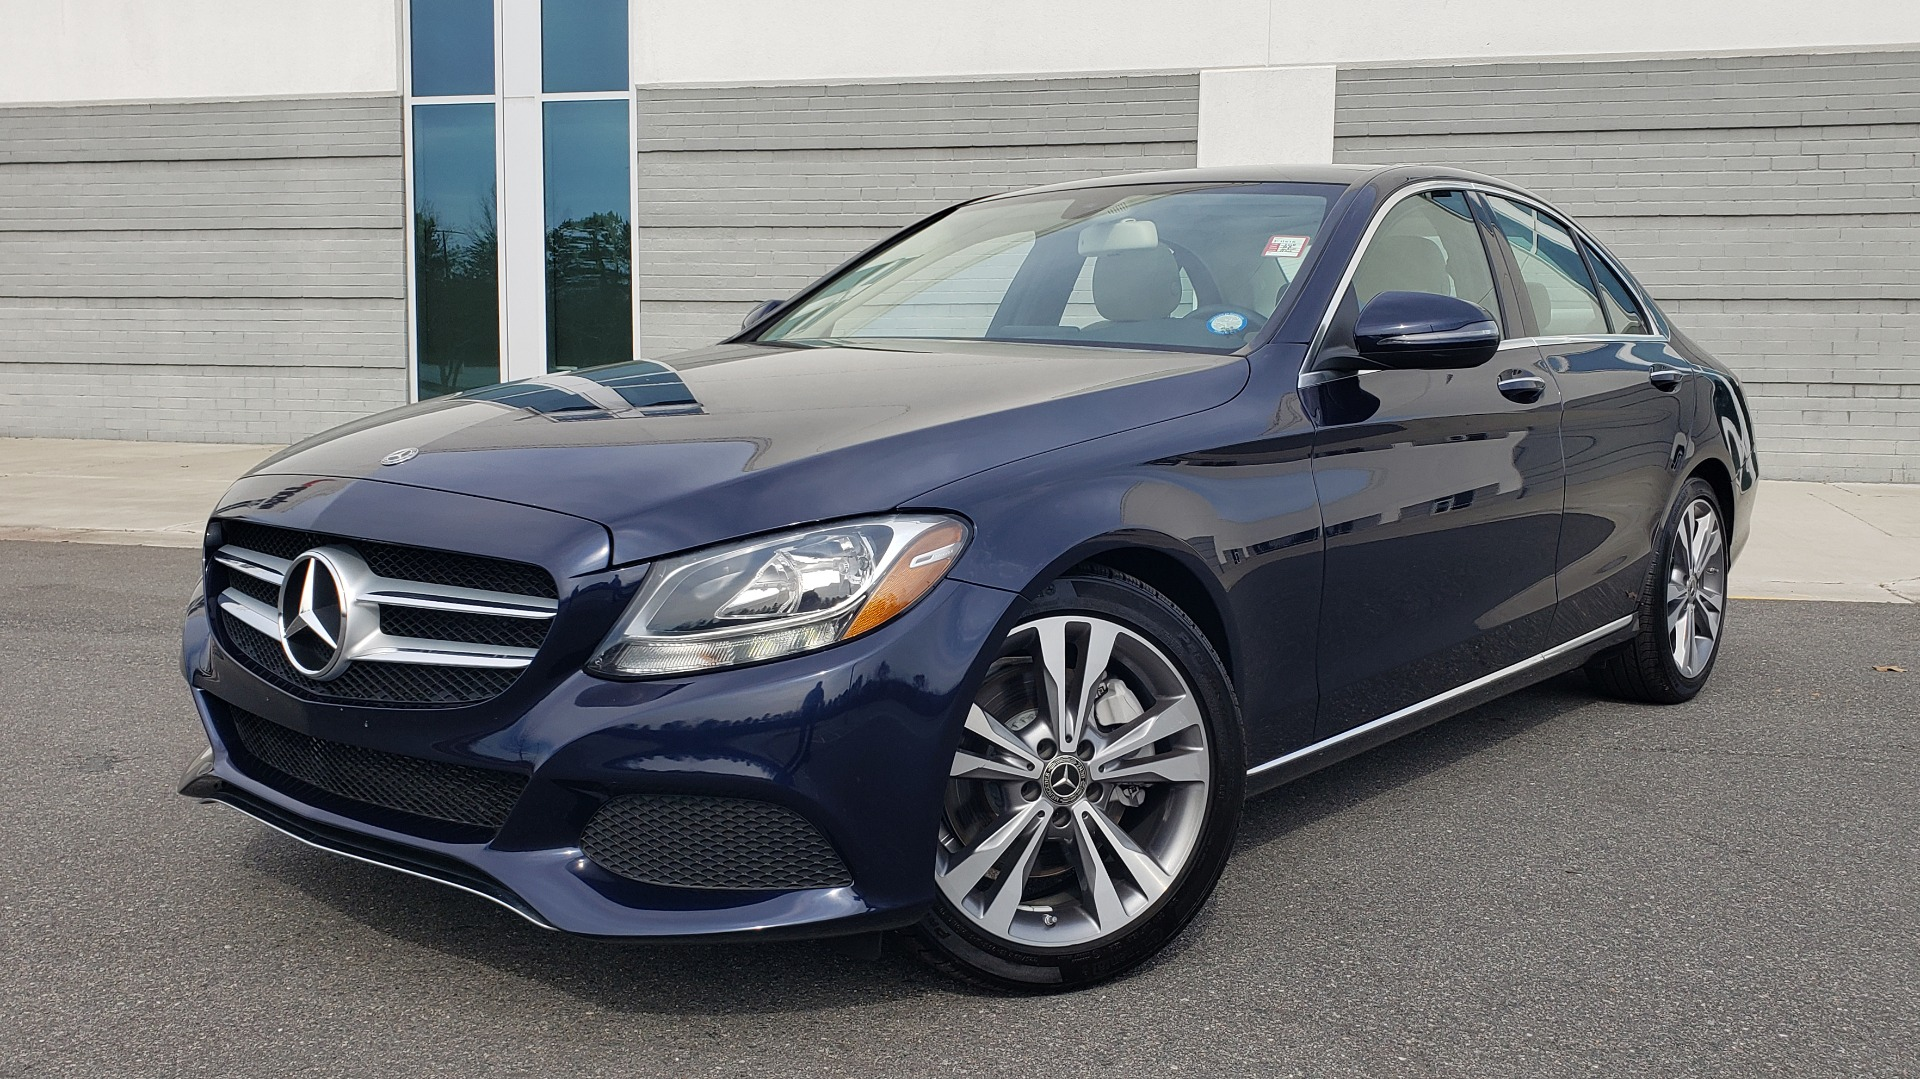 Used 2018 Mercedes-Benz C-CLASS C 300 PREMIUM / PANO-ROOF / HTD STST / APPL CARPLAY / REARVIEW for sale Sold at Formula Imports in Charlotte NC 28227 1